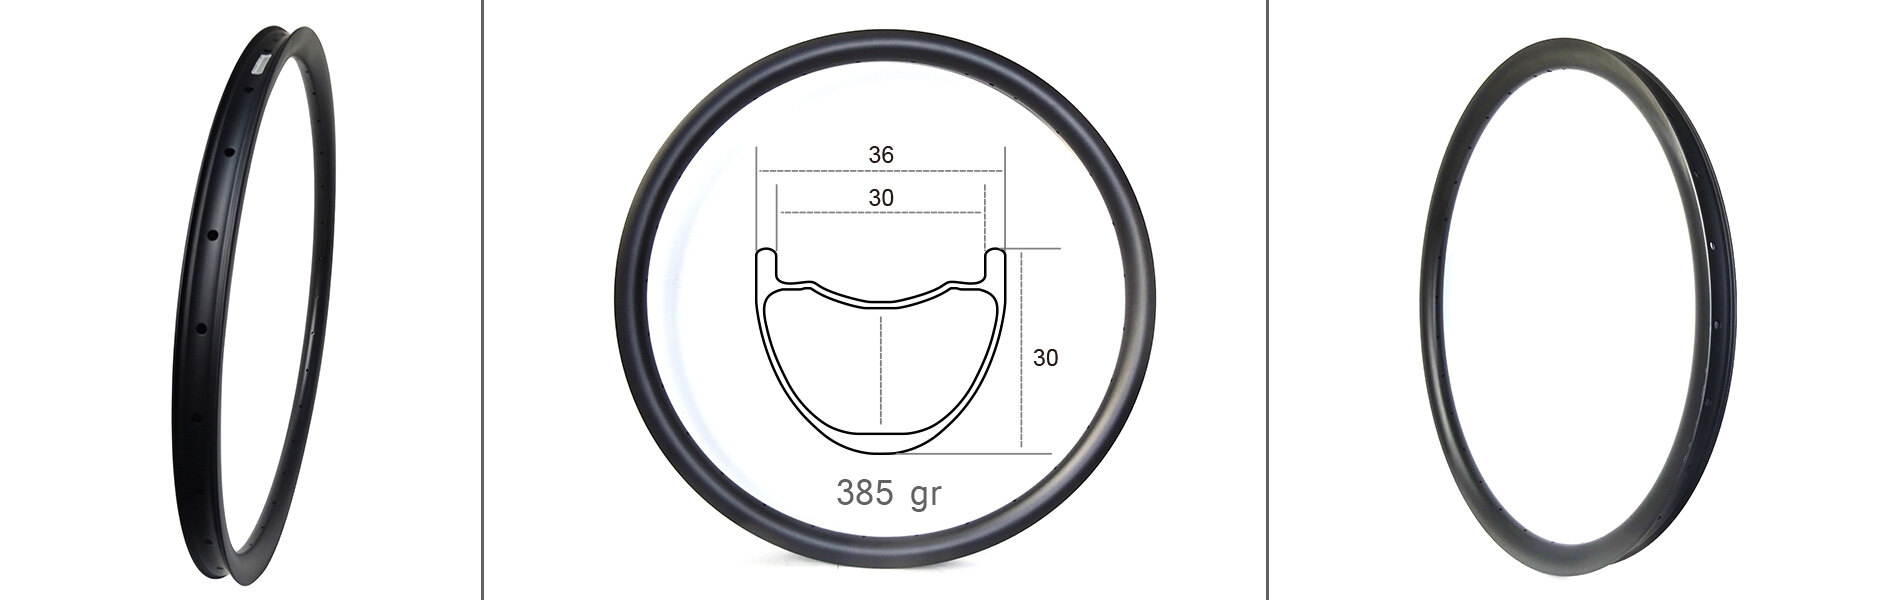 36mm wide 29er carbon mountain bicycle rims